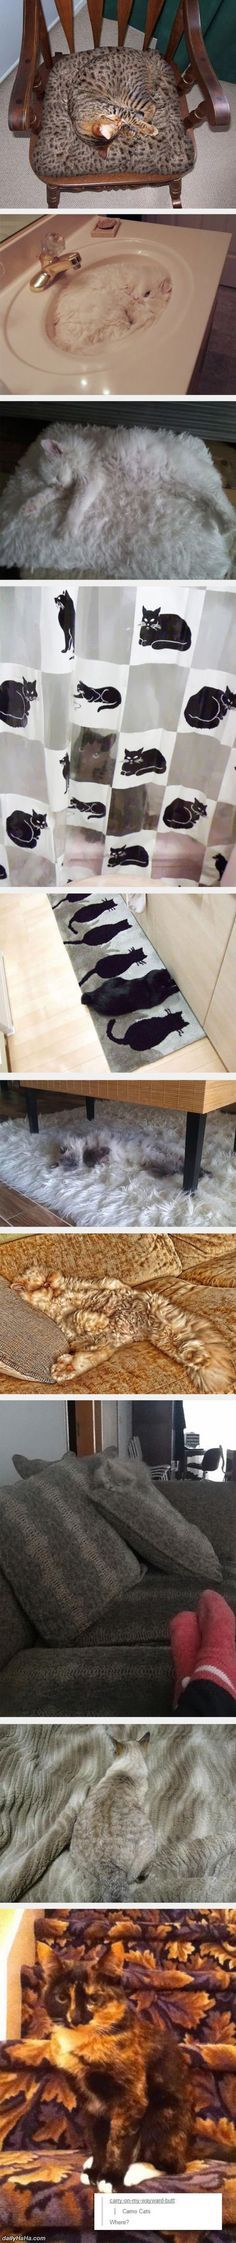 Camo Cats - the newest game of find the cat.